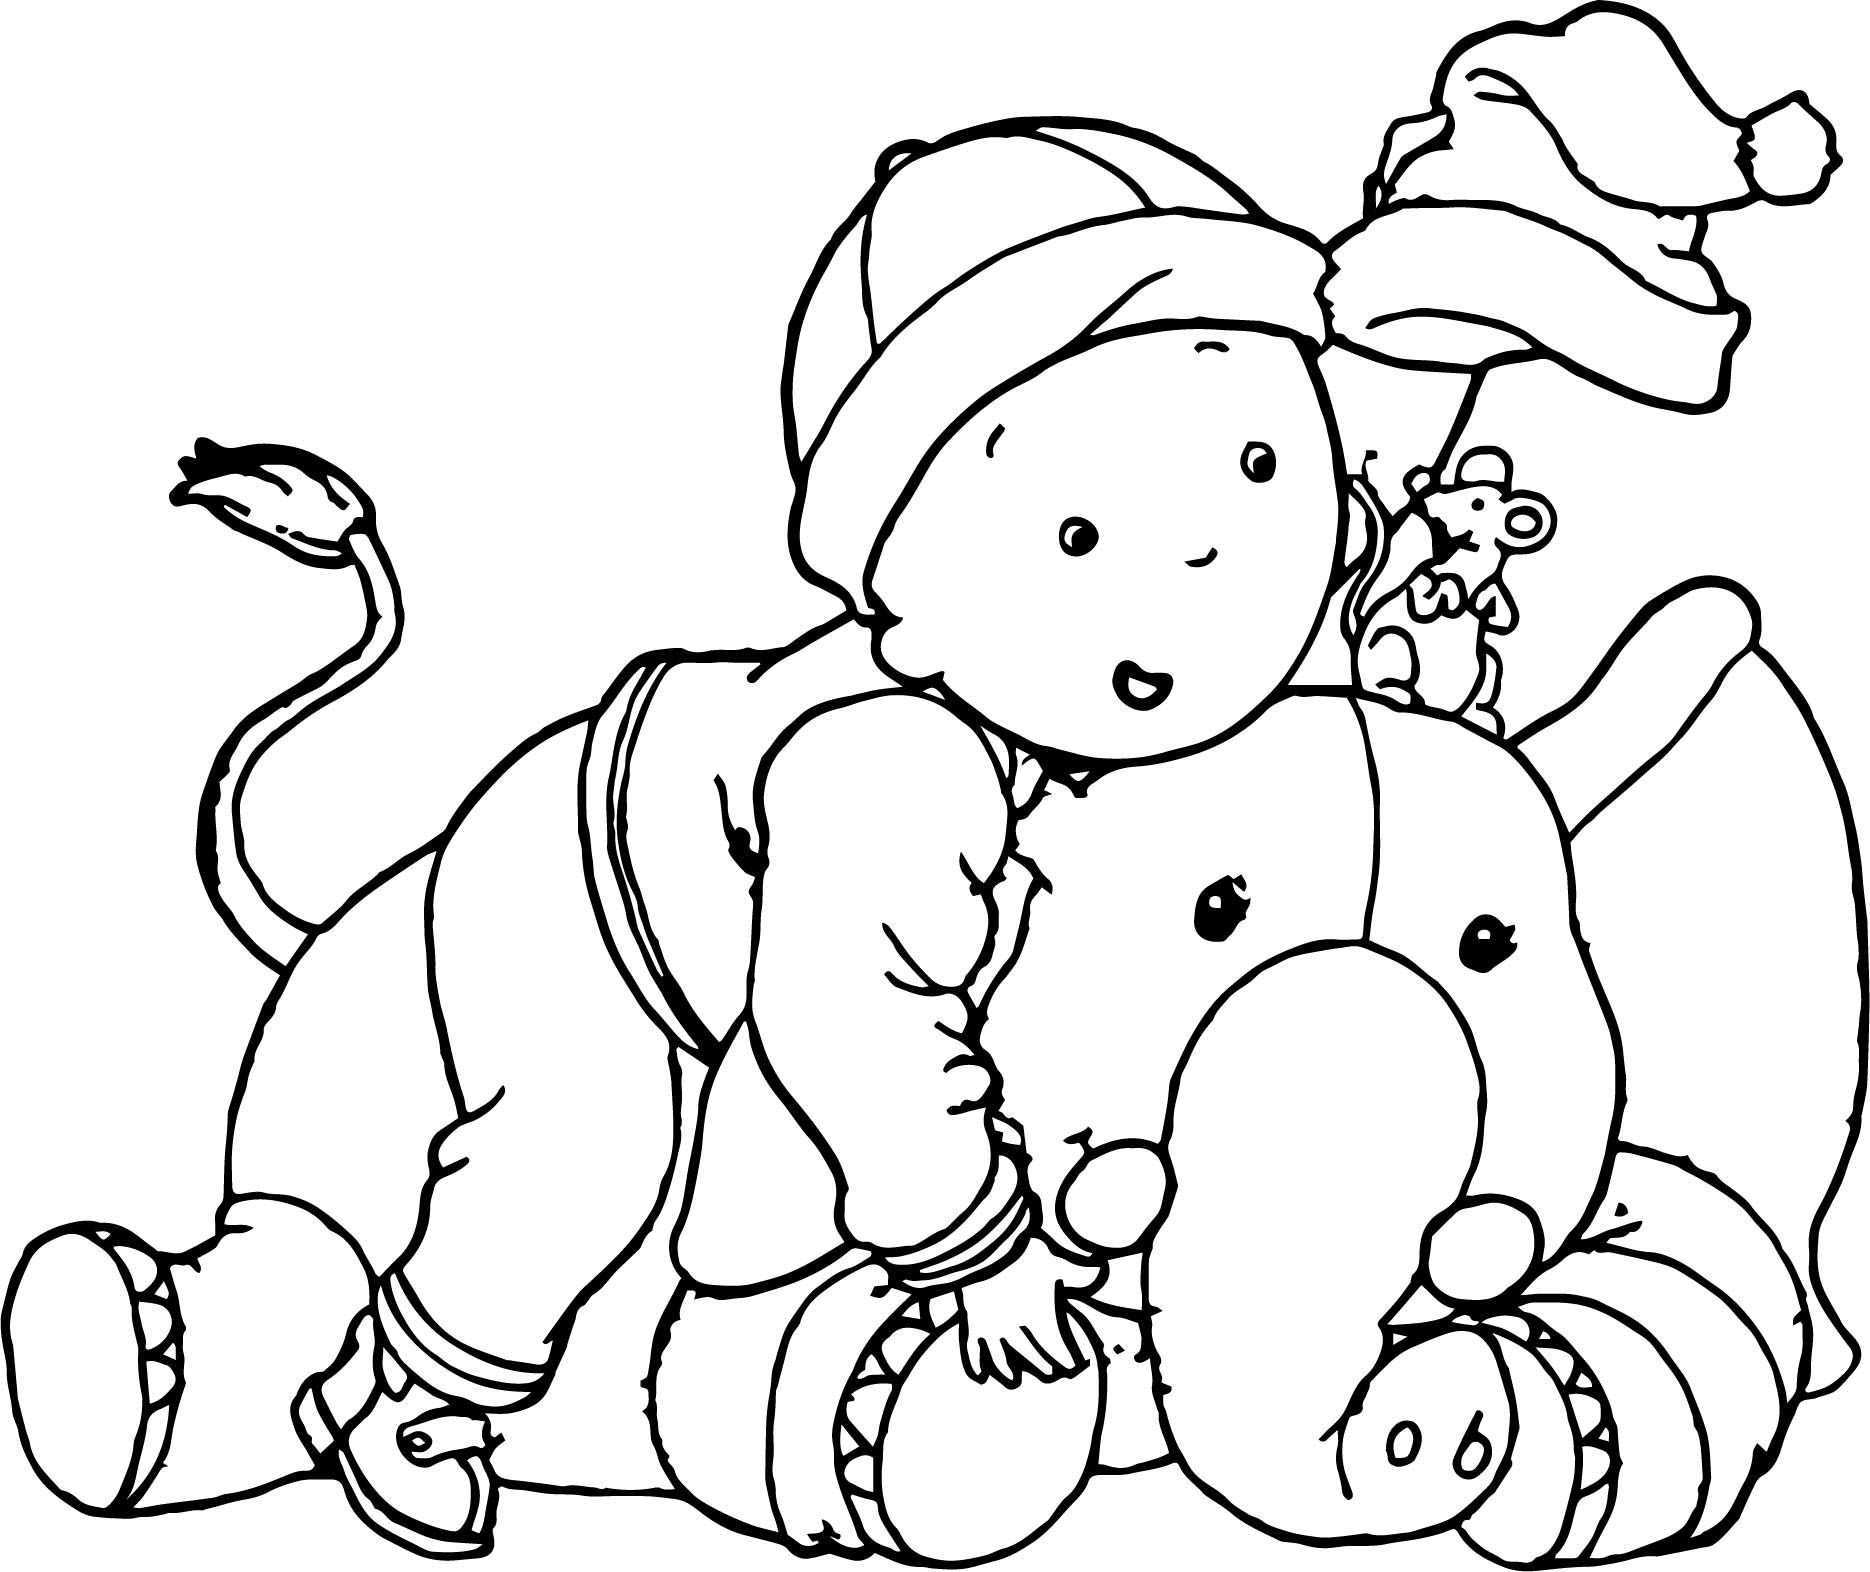 Caillou Elephant Mouse Funny Time Coloring Page